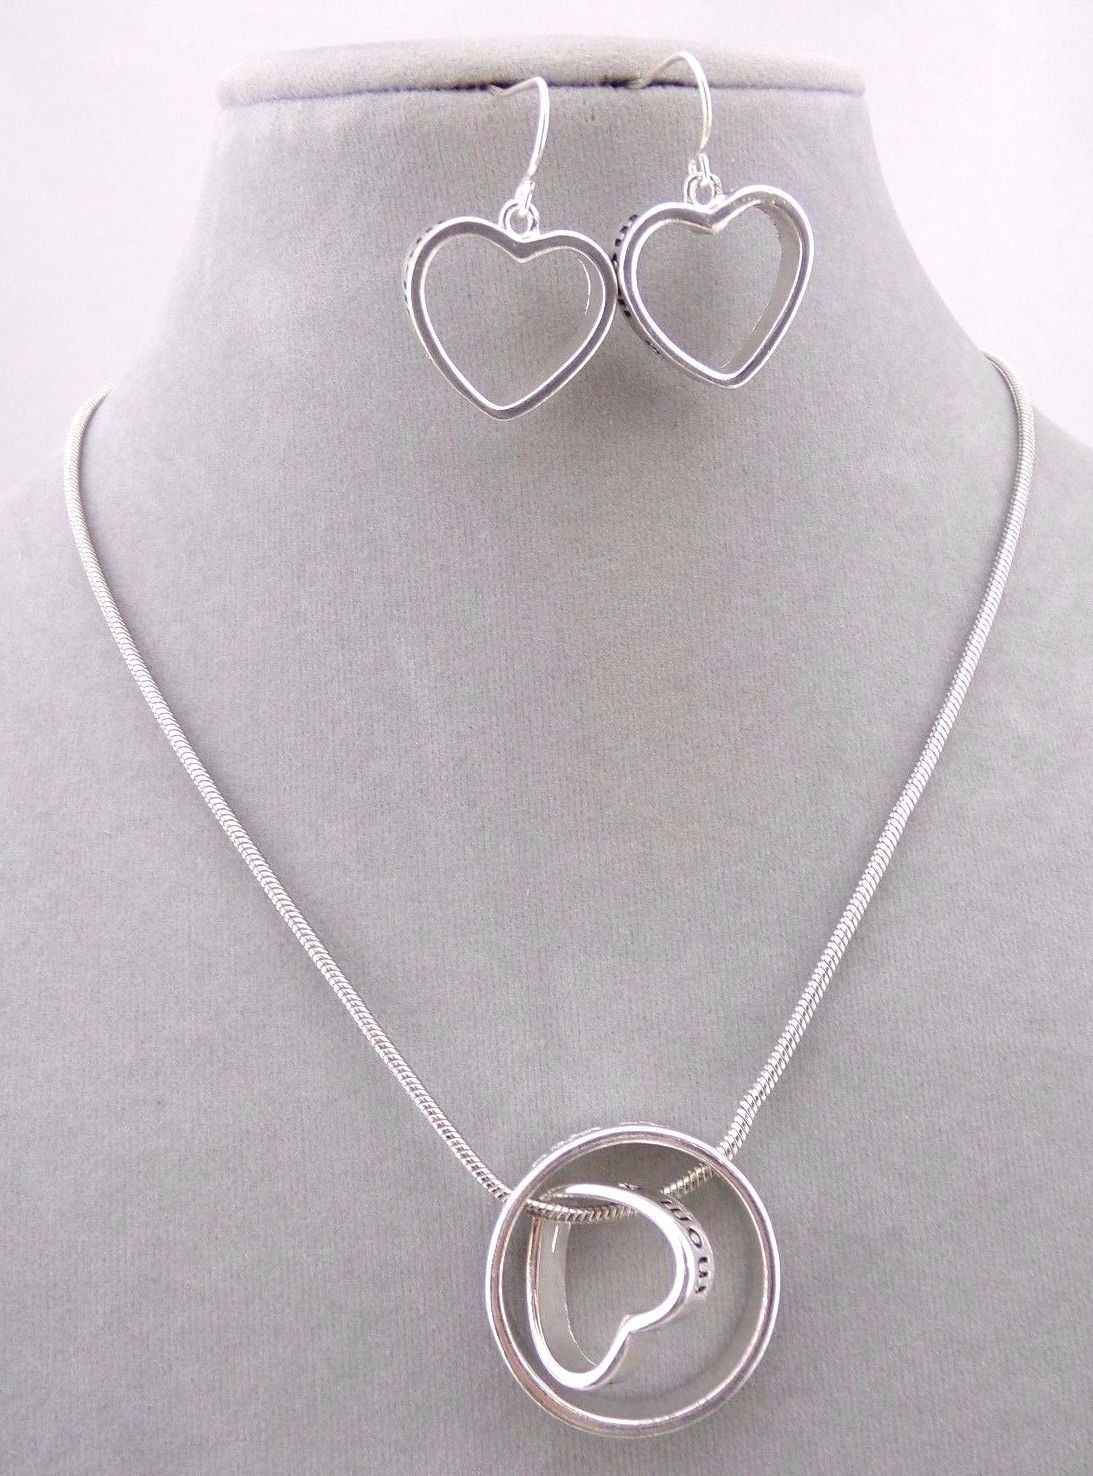 Heart And Ring Necklace Earrings Set Silver Mom Message Fashion Jewelry NEW